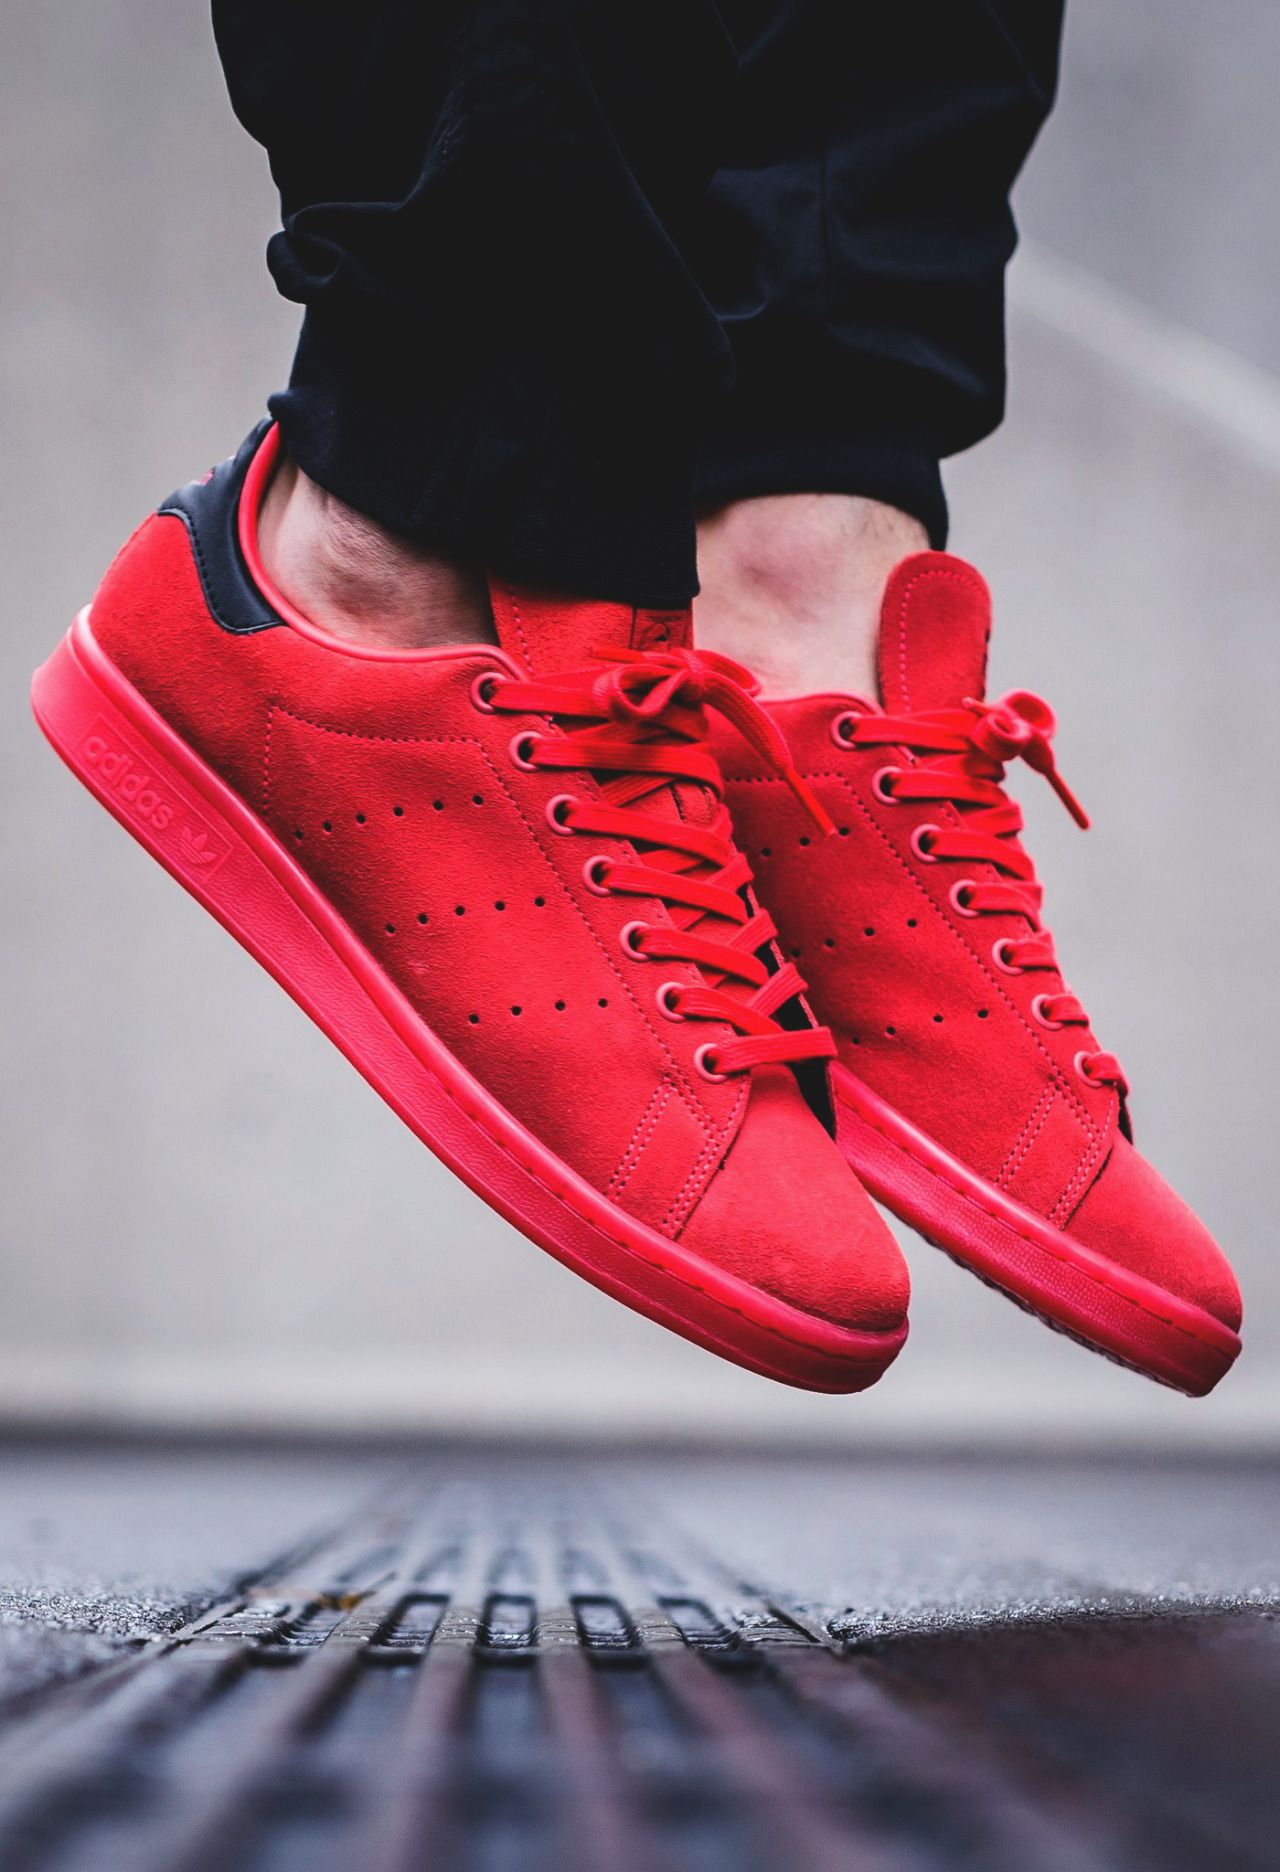 save off c7a4f 4f4d0 Adidas Stan Smith Shocking Red  sneakernews  Sneakers  StreetStyle  Kicks   adidas  nike  vans  newbalance  puma  ADIDAS  ASICS  CONVERSE  DIADORA   REEBOK   ...